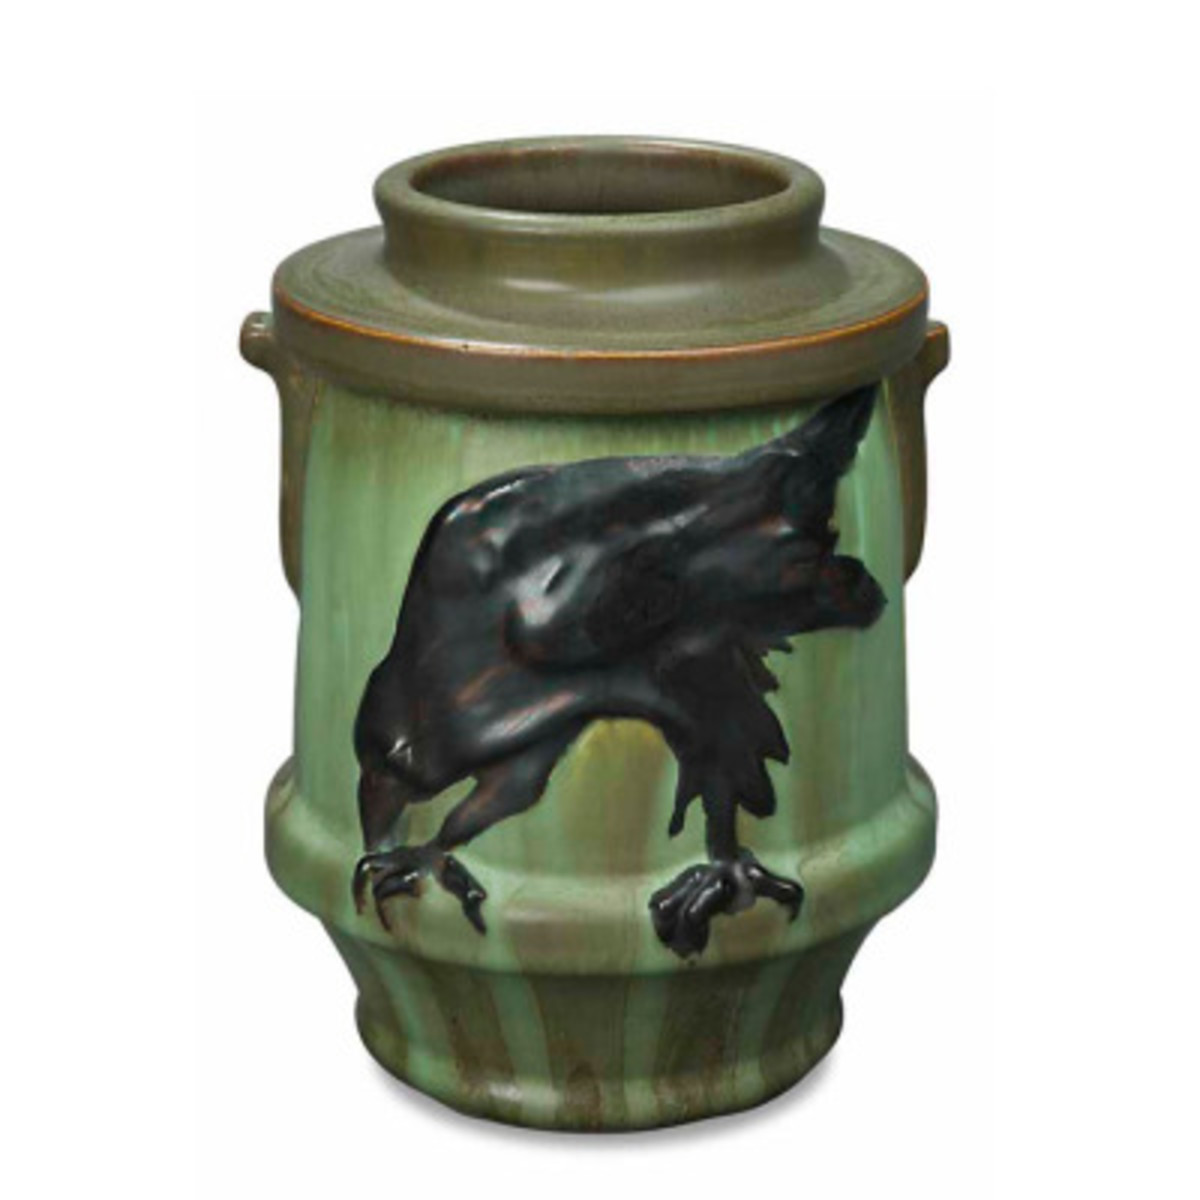 'The Messenger' gothic-feeling vase from Ephraim Faience.